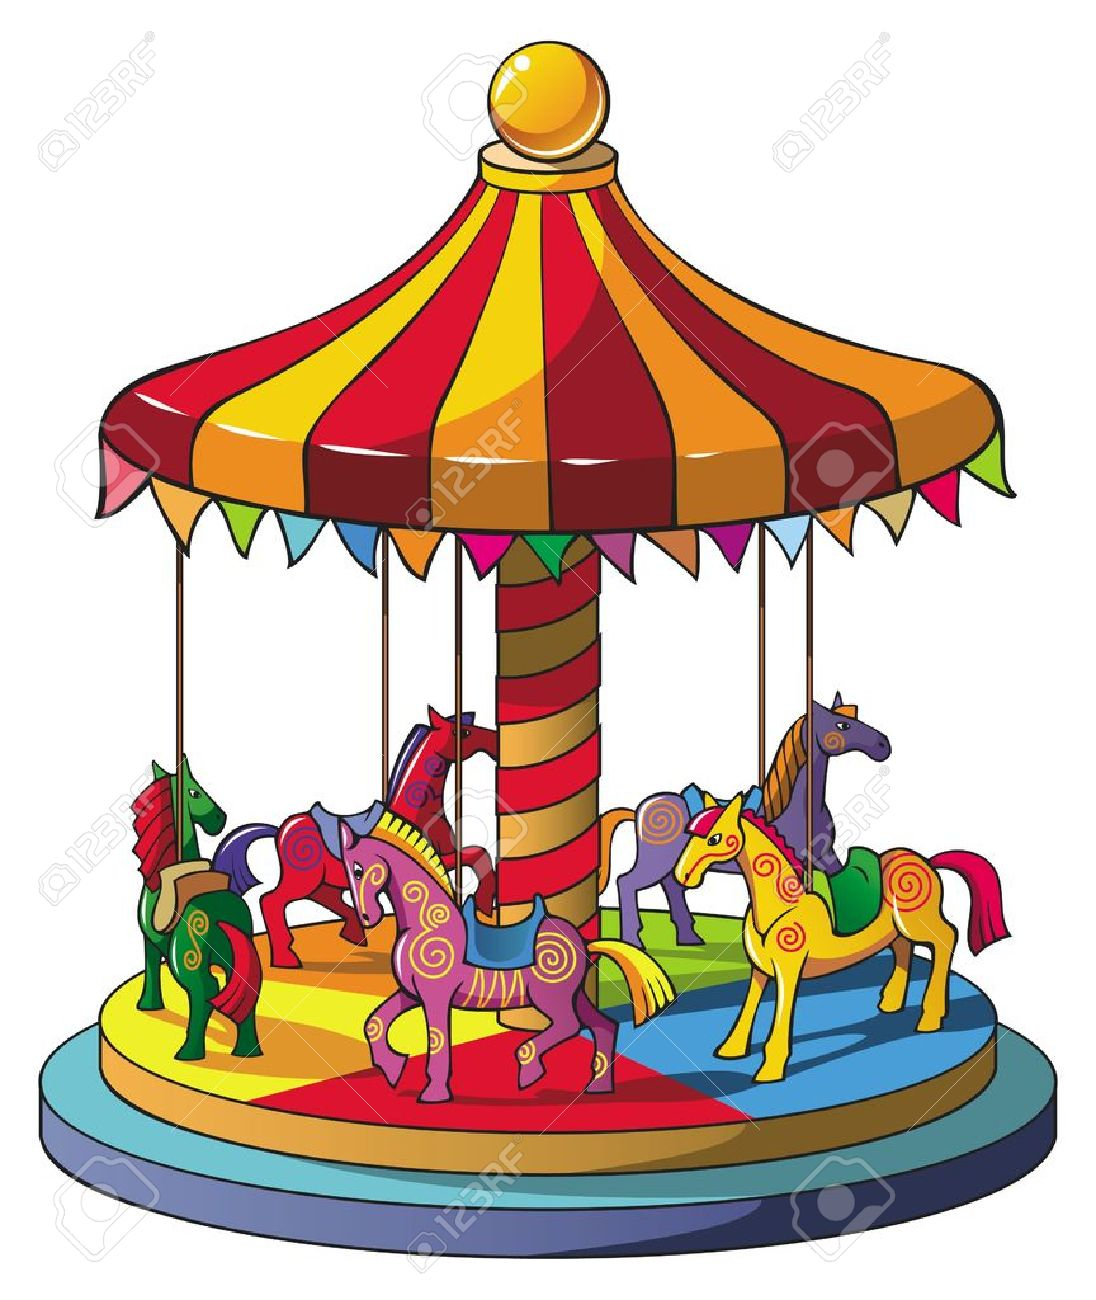 children carousel with colorful horses merry go round vector rh 123rf com carousel clipart black and white carousel clipart black and white